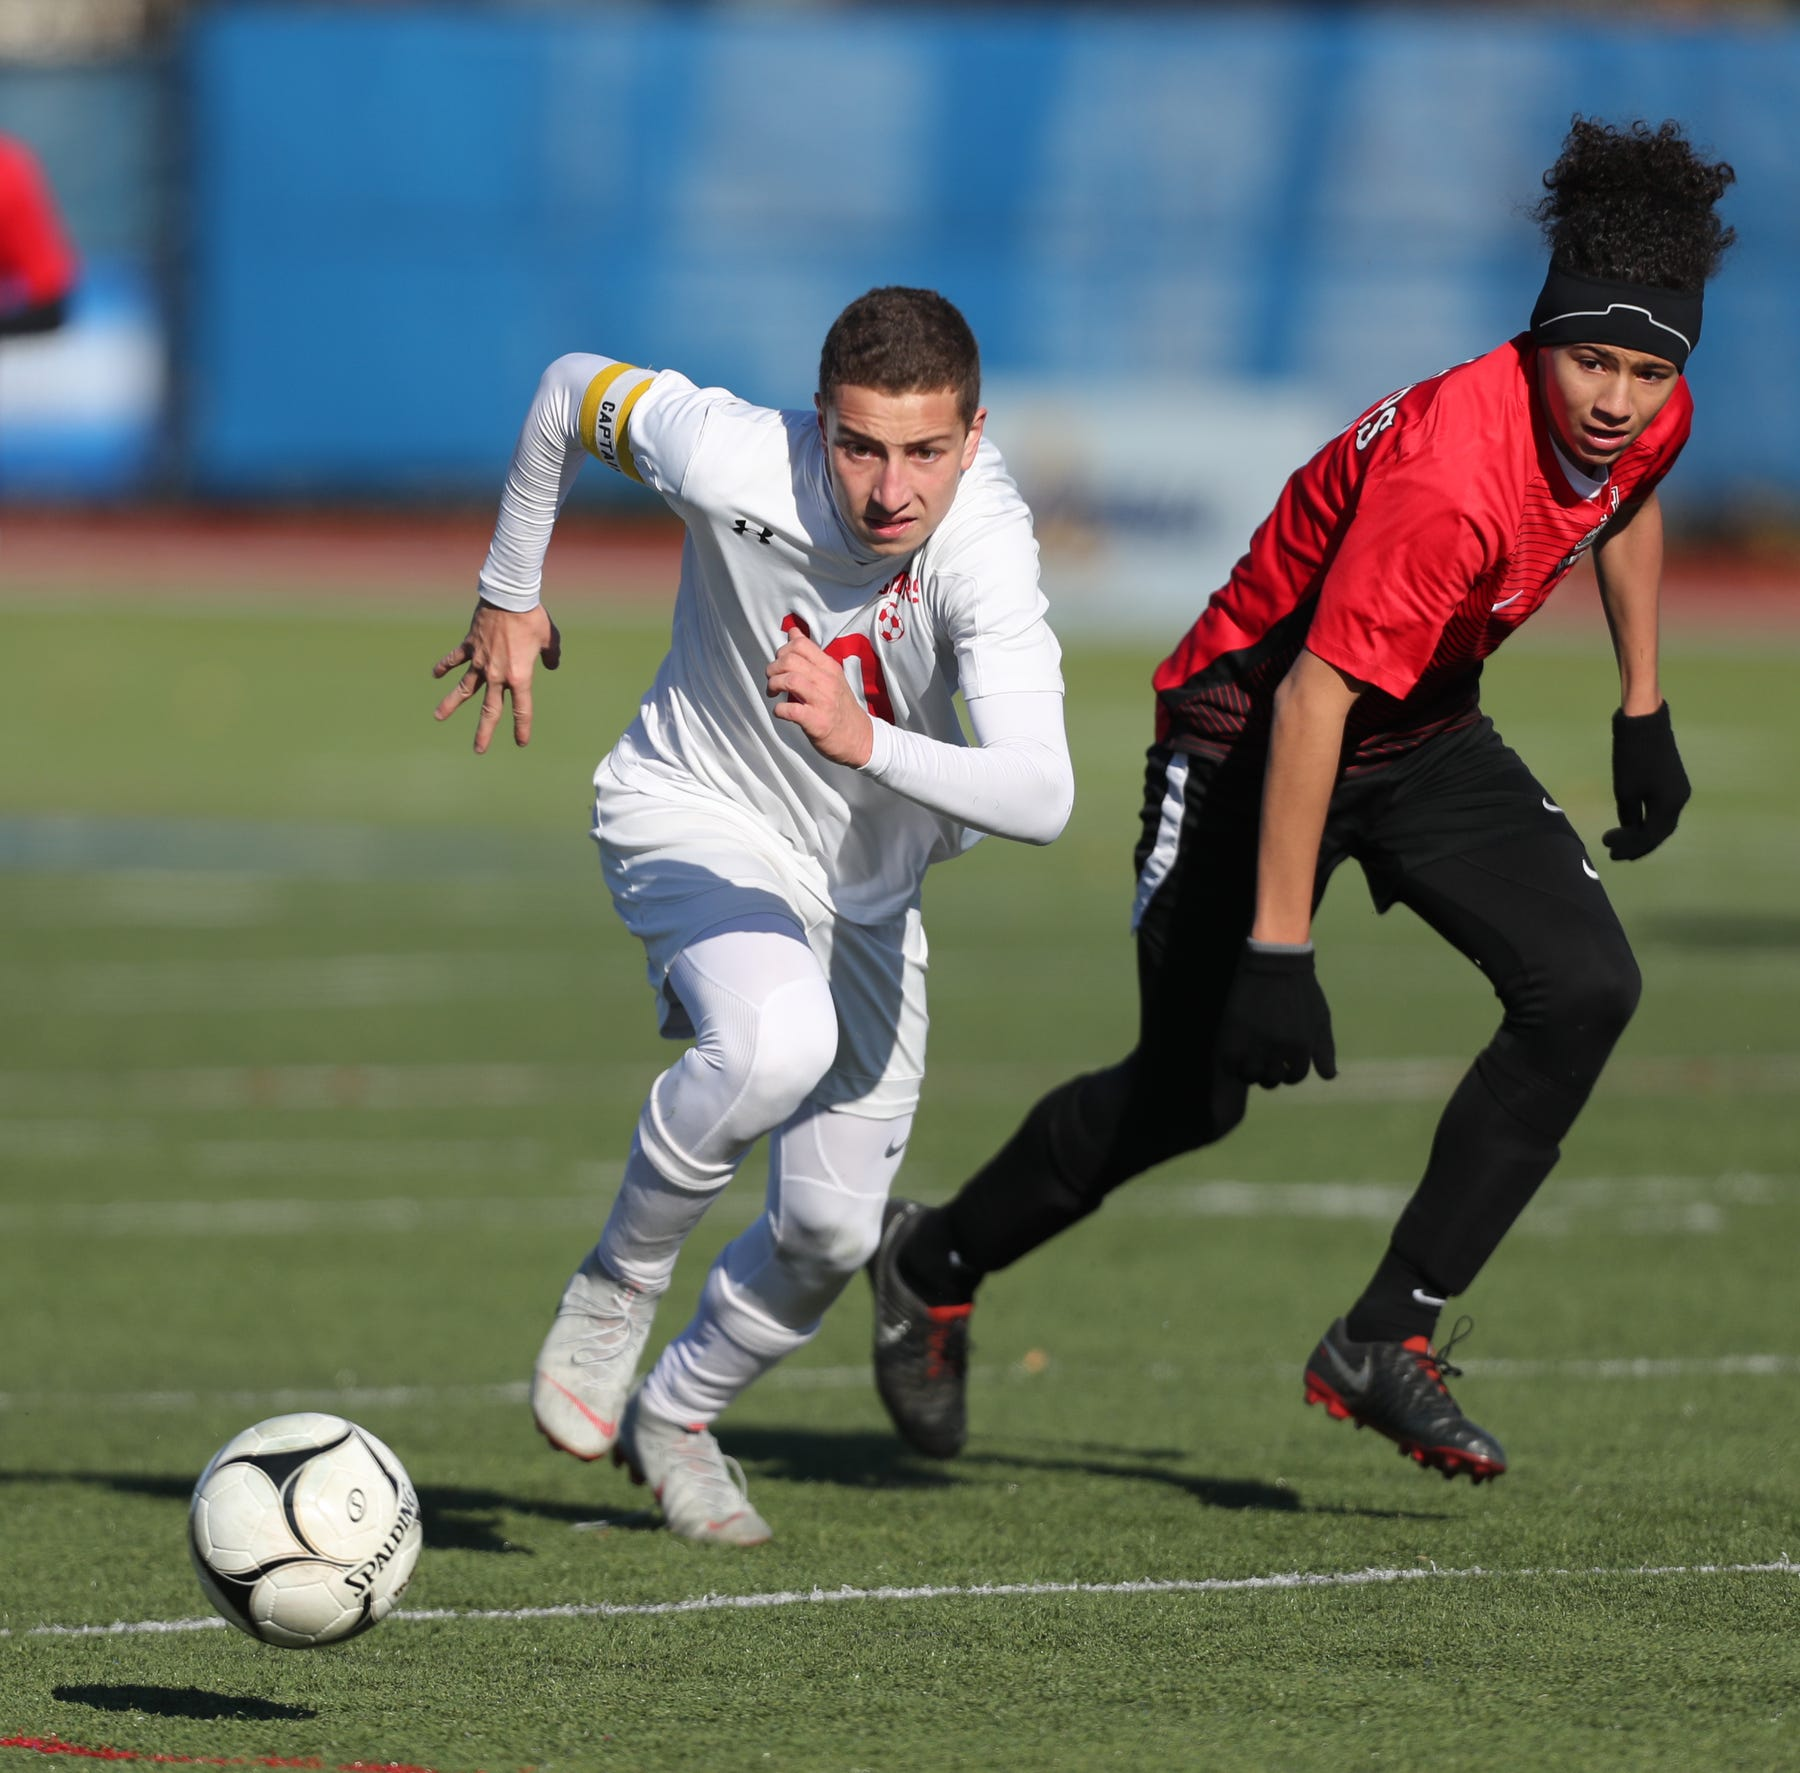 Boys soccer: Vote for player of the year in Westchester/Putnam